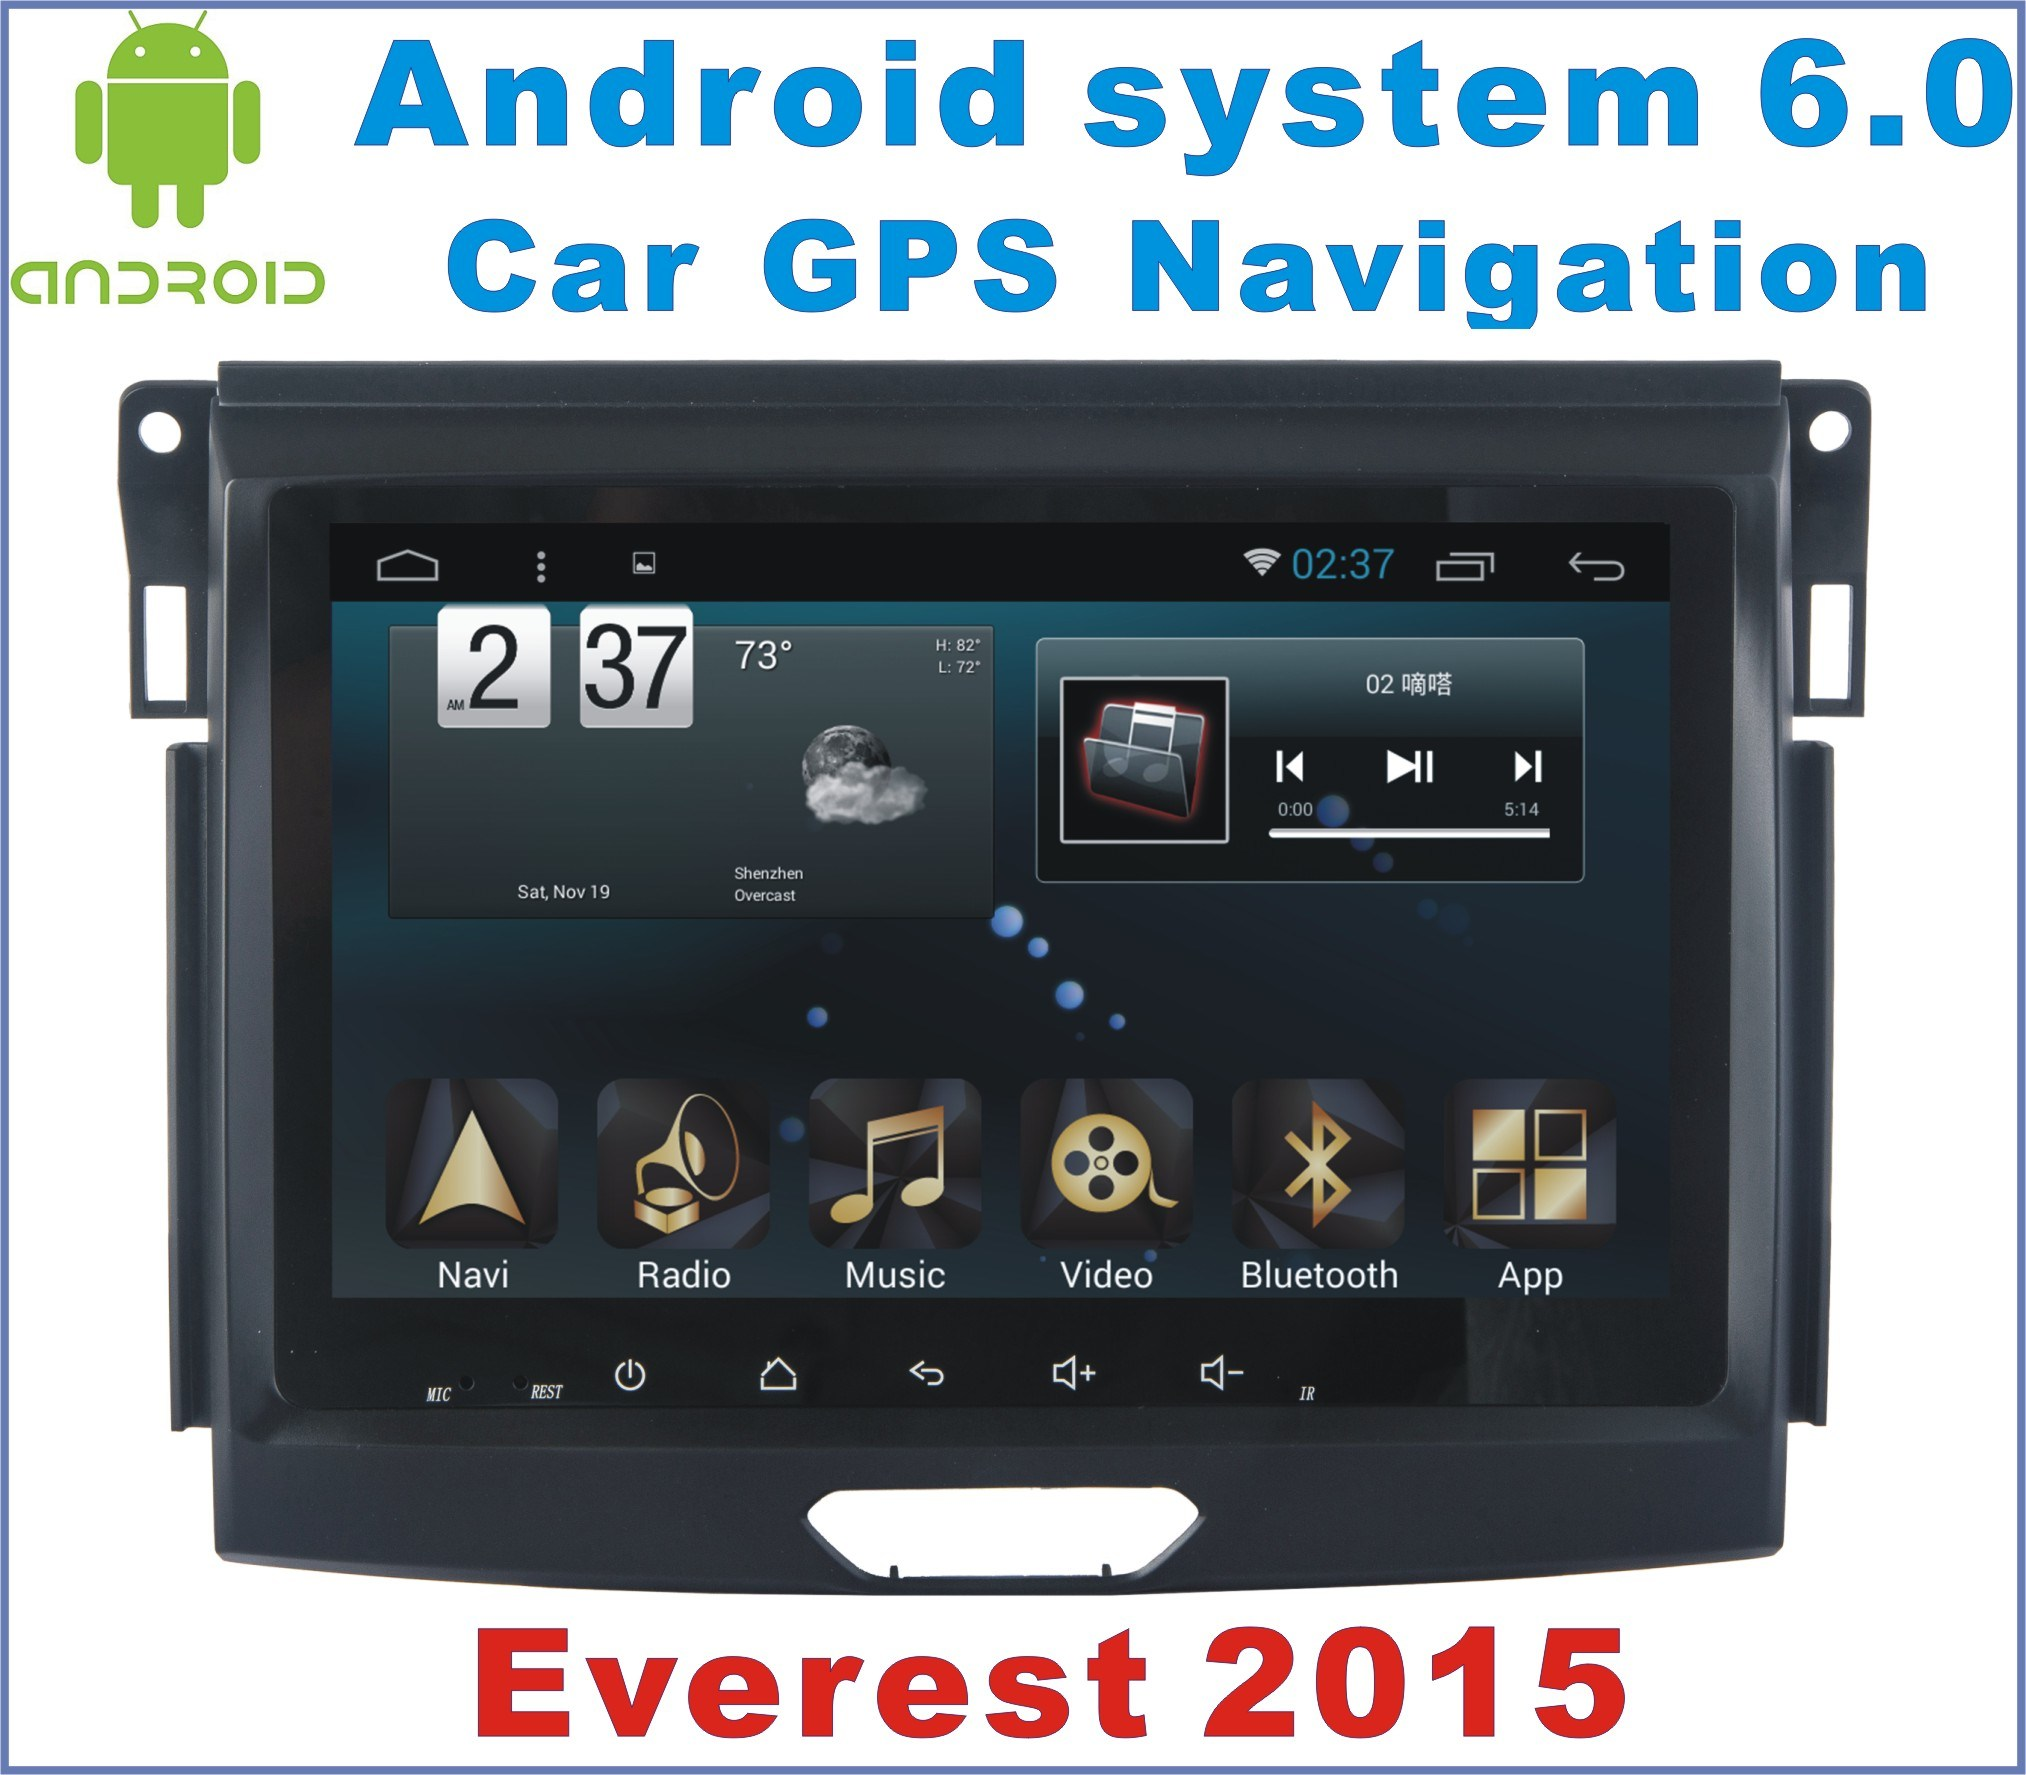 Android System 6.0 Car GPS for Ford Everest 2015 with Car Navigation